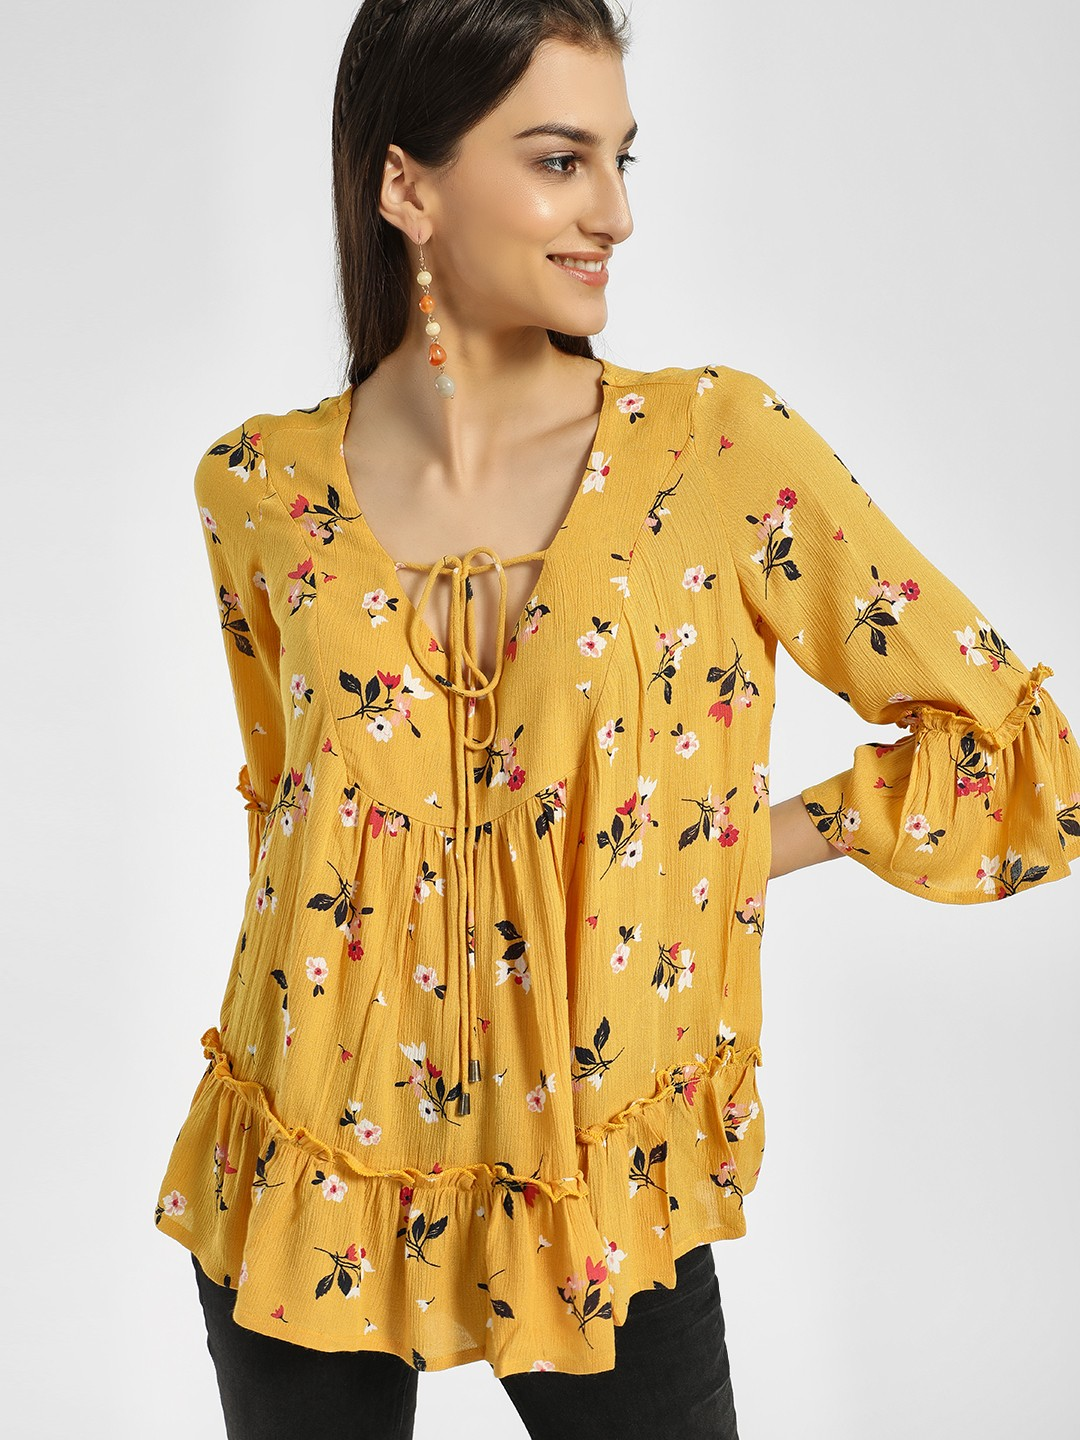 Miaminx Yellow Floral Print Front Tie-Up Blouse 1